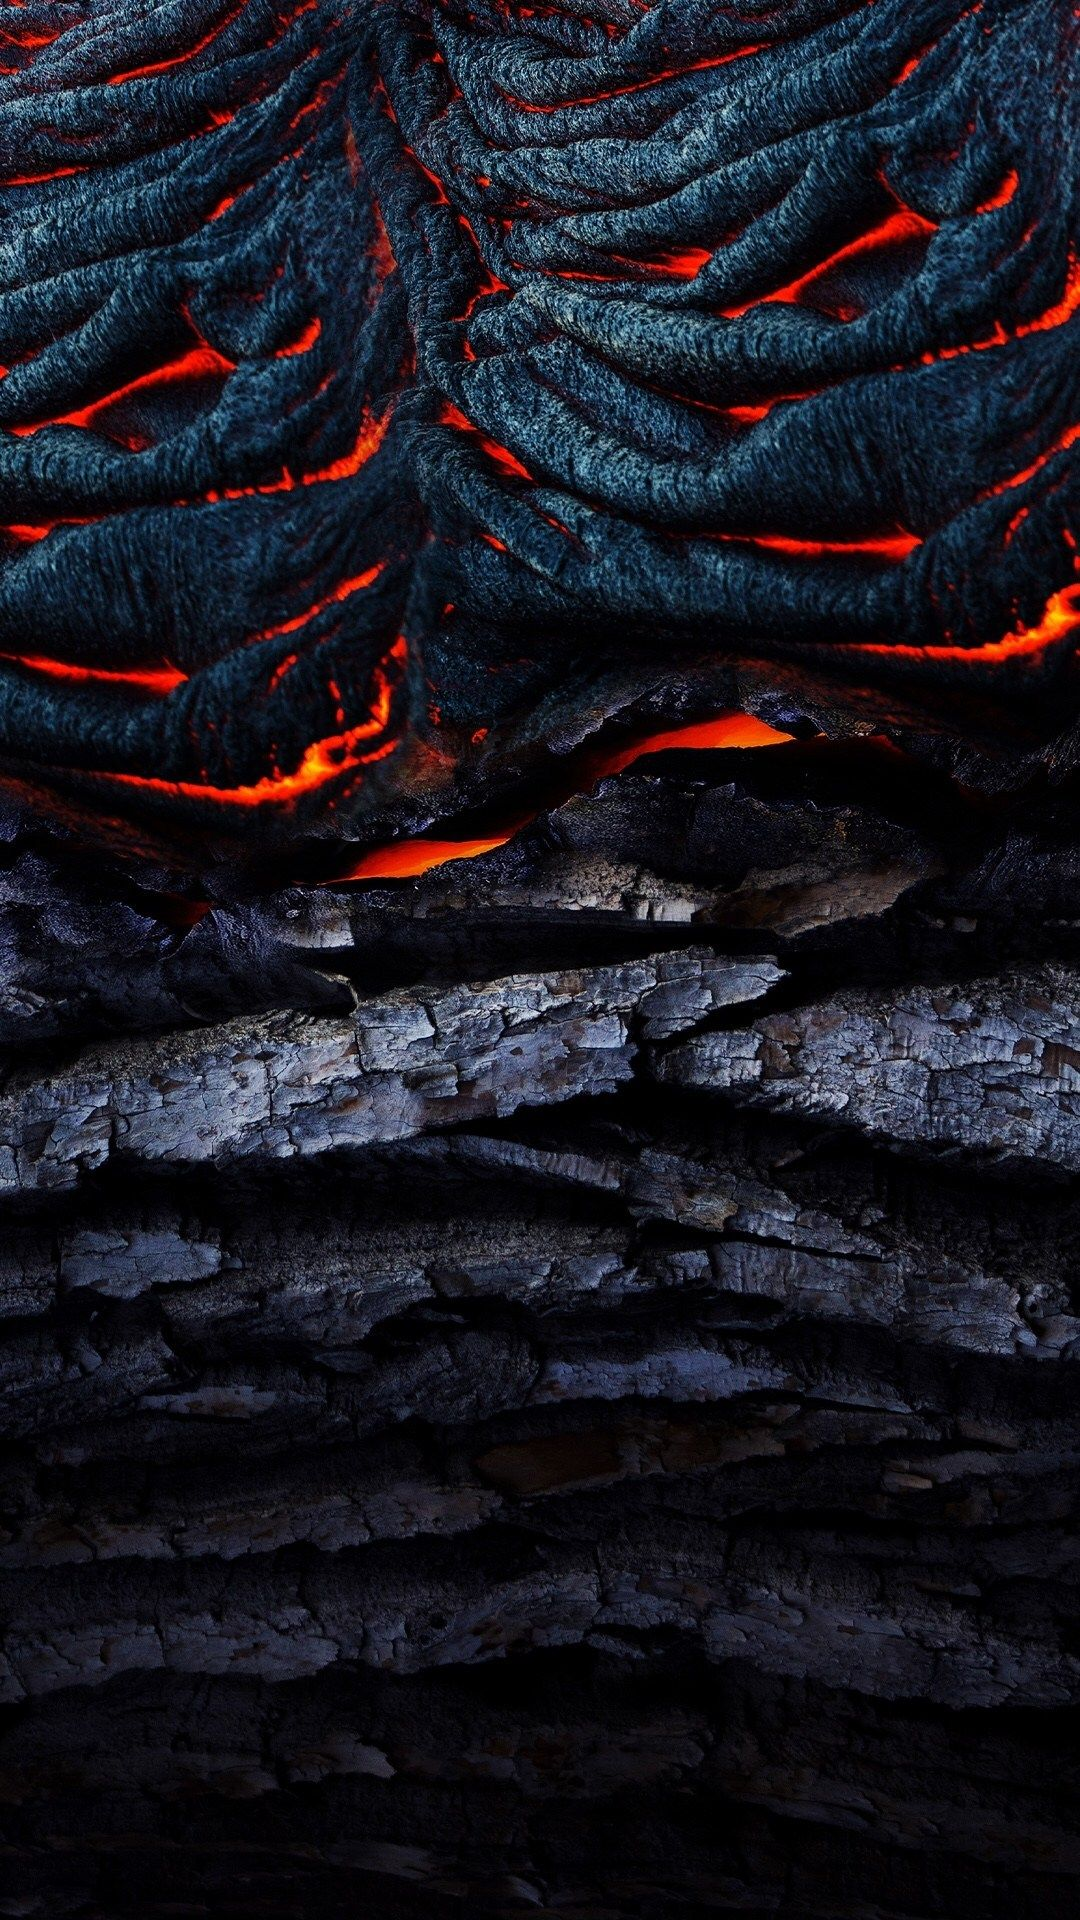 1080x1920 Fiery Stone and Wood: Fire Phone Wallpaper – Wallpapers For Tech